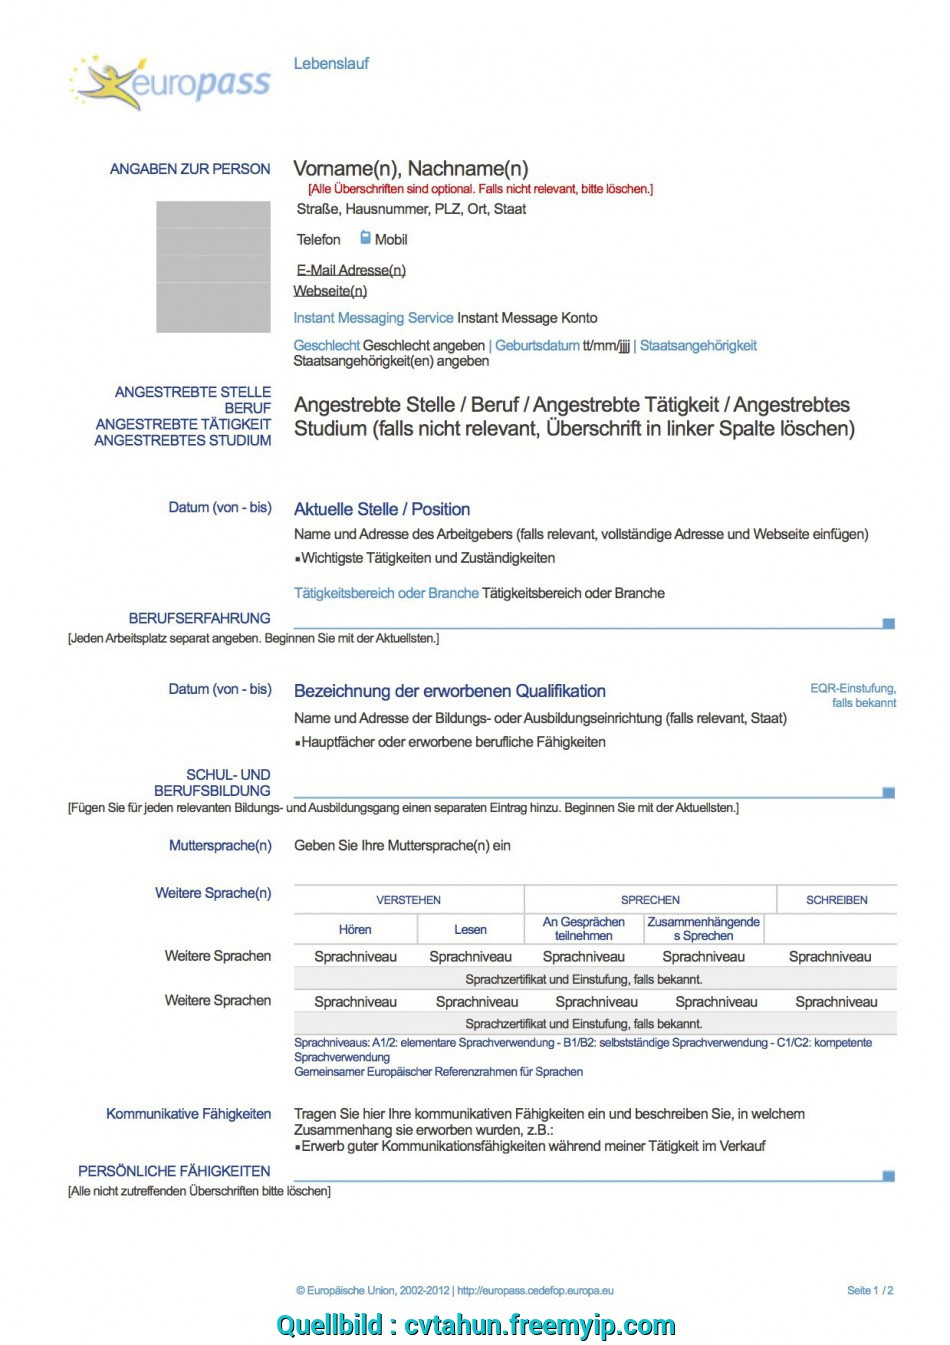 Einfach Europass Cv Download Deutsch, Resume, Bca Students, Europass Download Deutsch